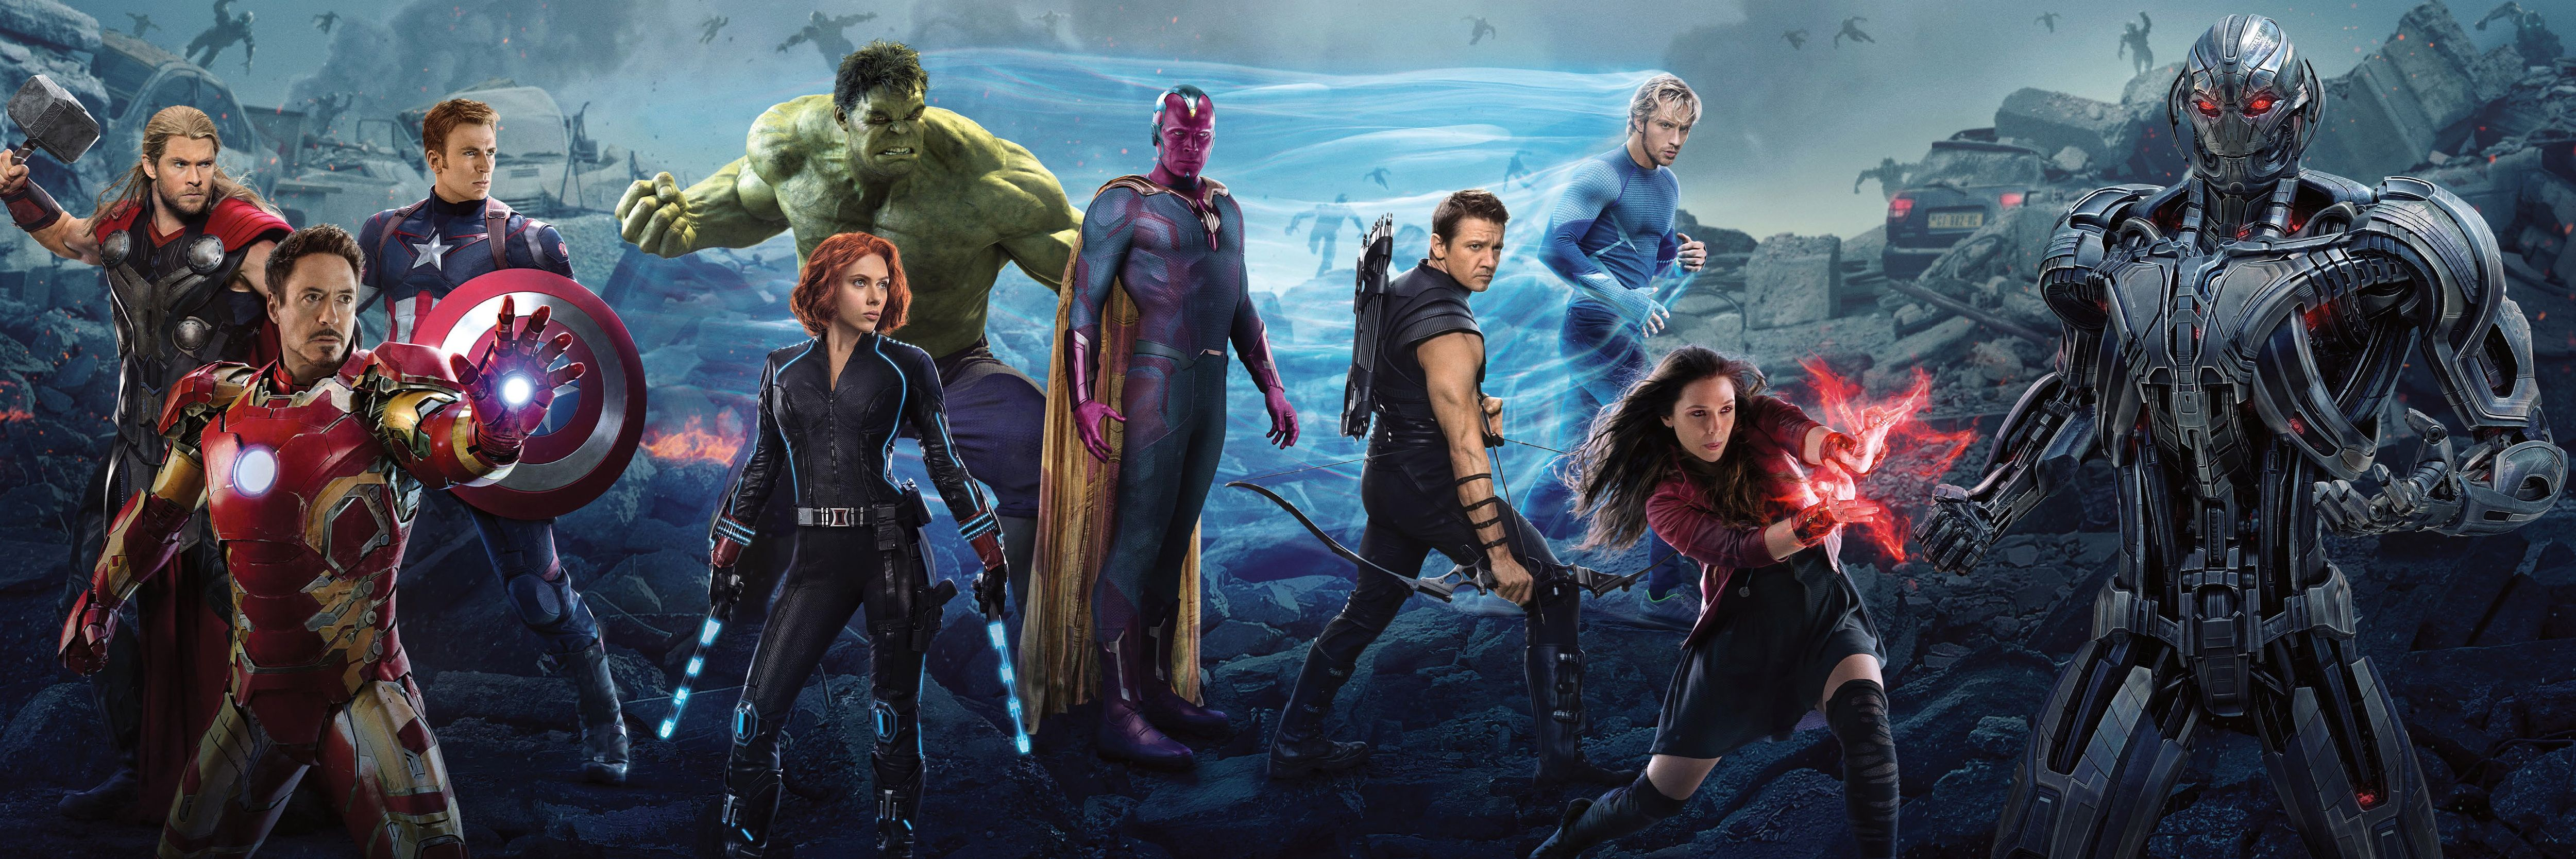 Beautiful Wallpaper Marvel Avengers Age Ultron - c8497b02608707075bfb50df0d84a732  Graphic_621641.jpg